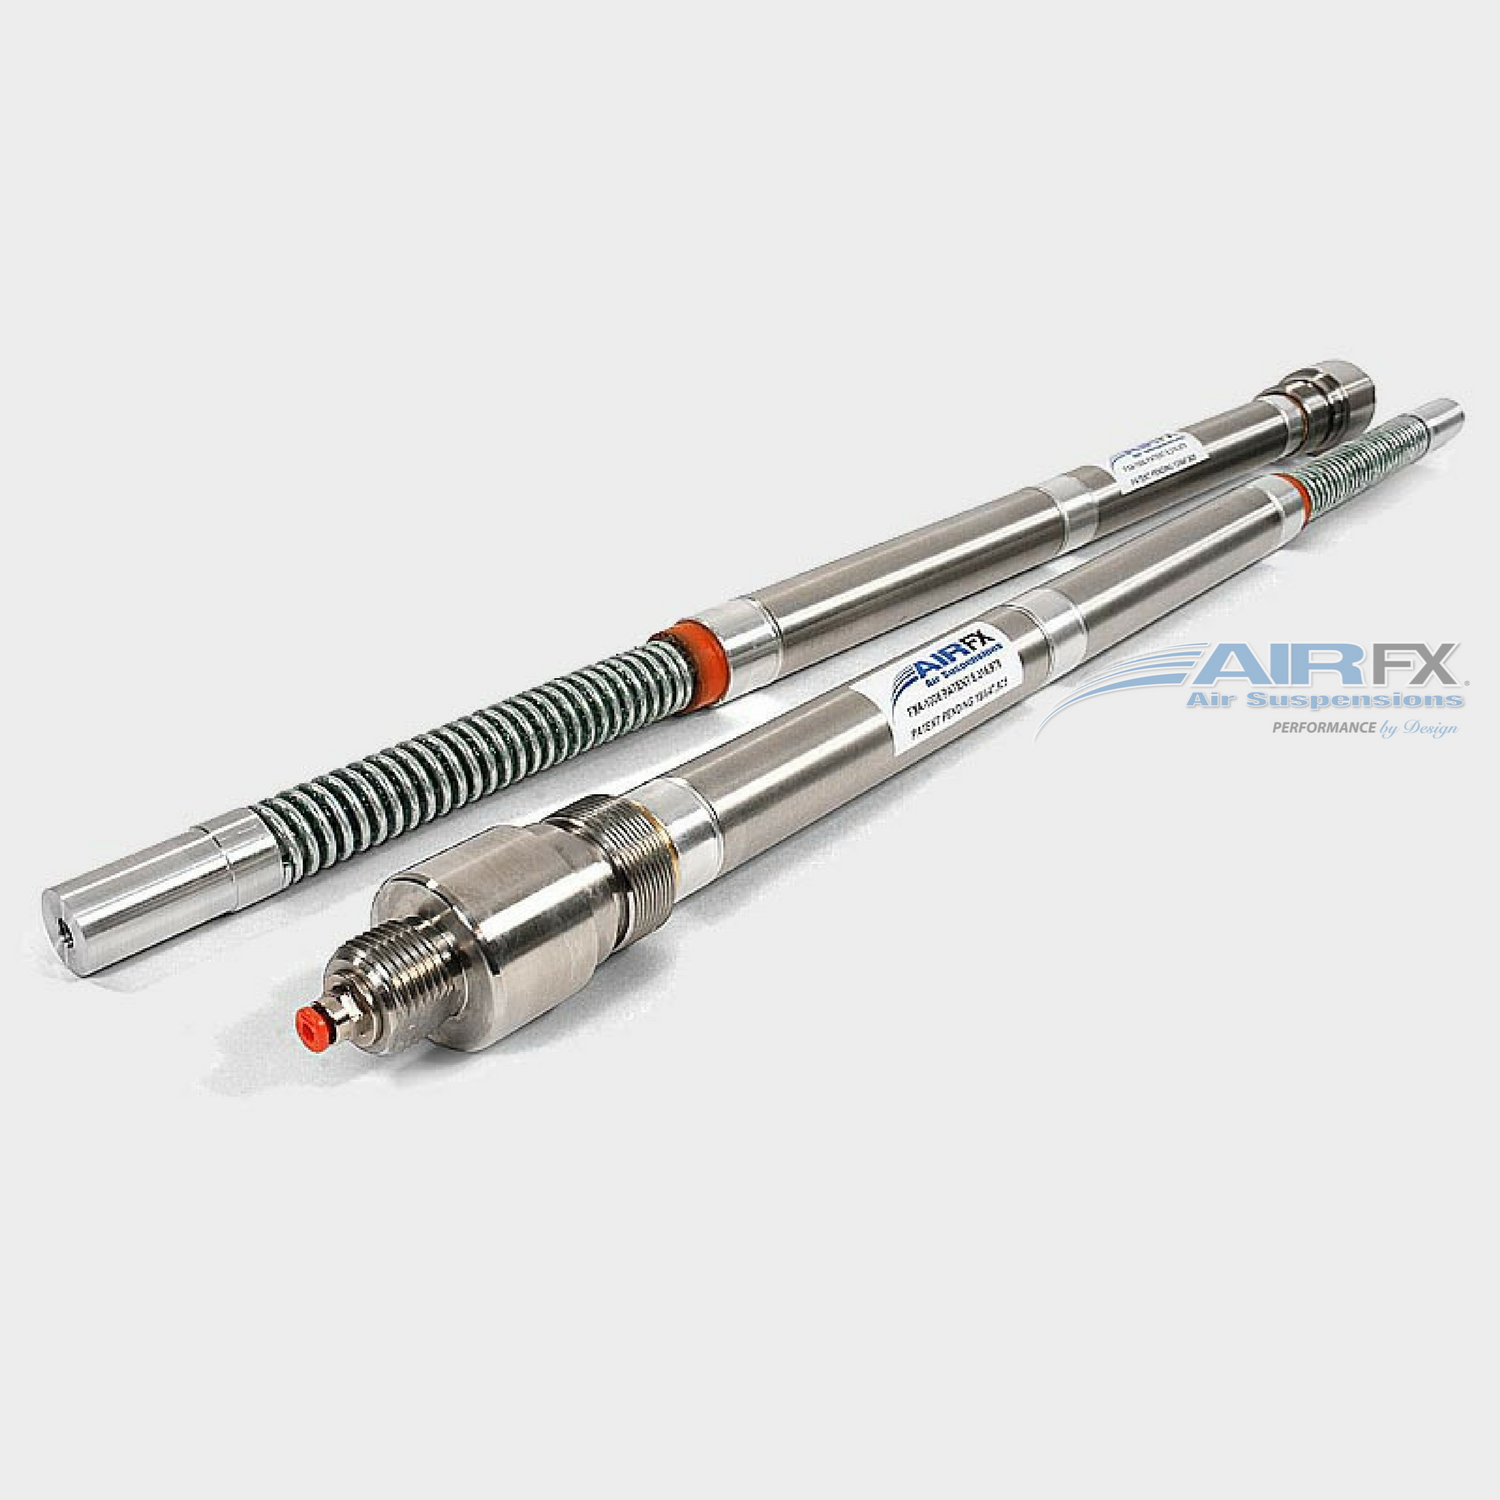 41mm Front Cartridge Pair w/ HHI for 30''/32'' long or 32'' short neck (FXA-2016-3L) [+$1,370.00]